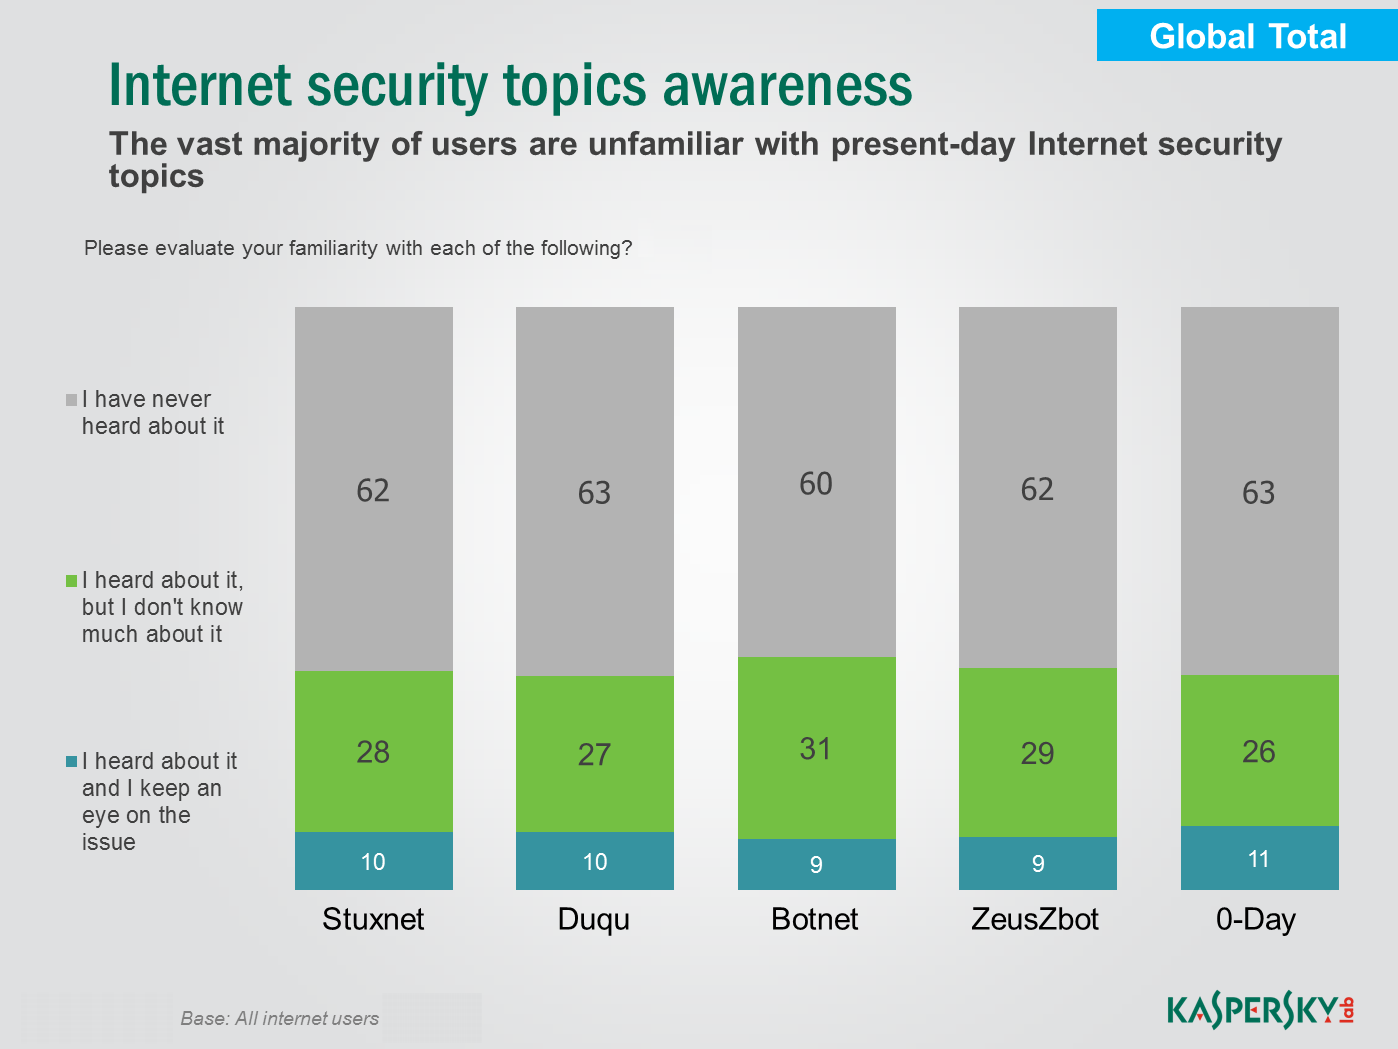 Lack of awareness about the most dangerous threats Despite all the media coverage, almost two-thirds of respondents have never heard of such notorious malware as Stuxnet, Duqu and Zeus.